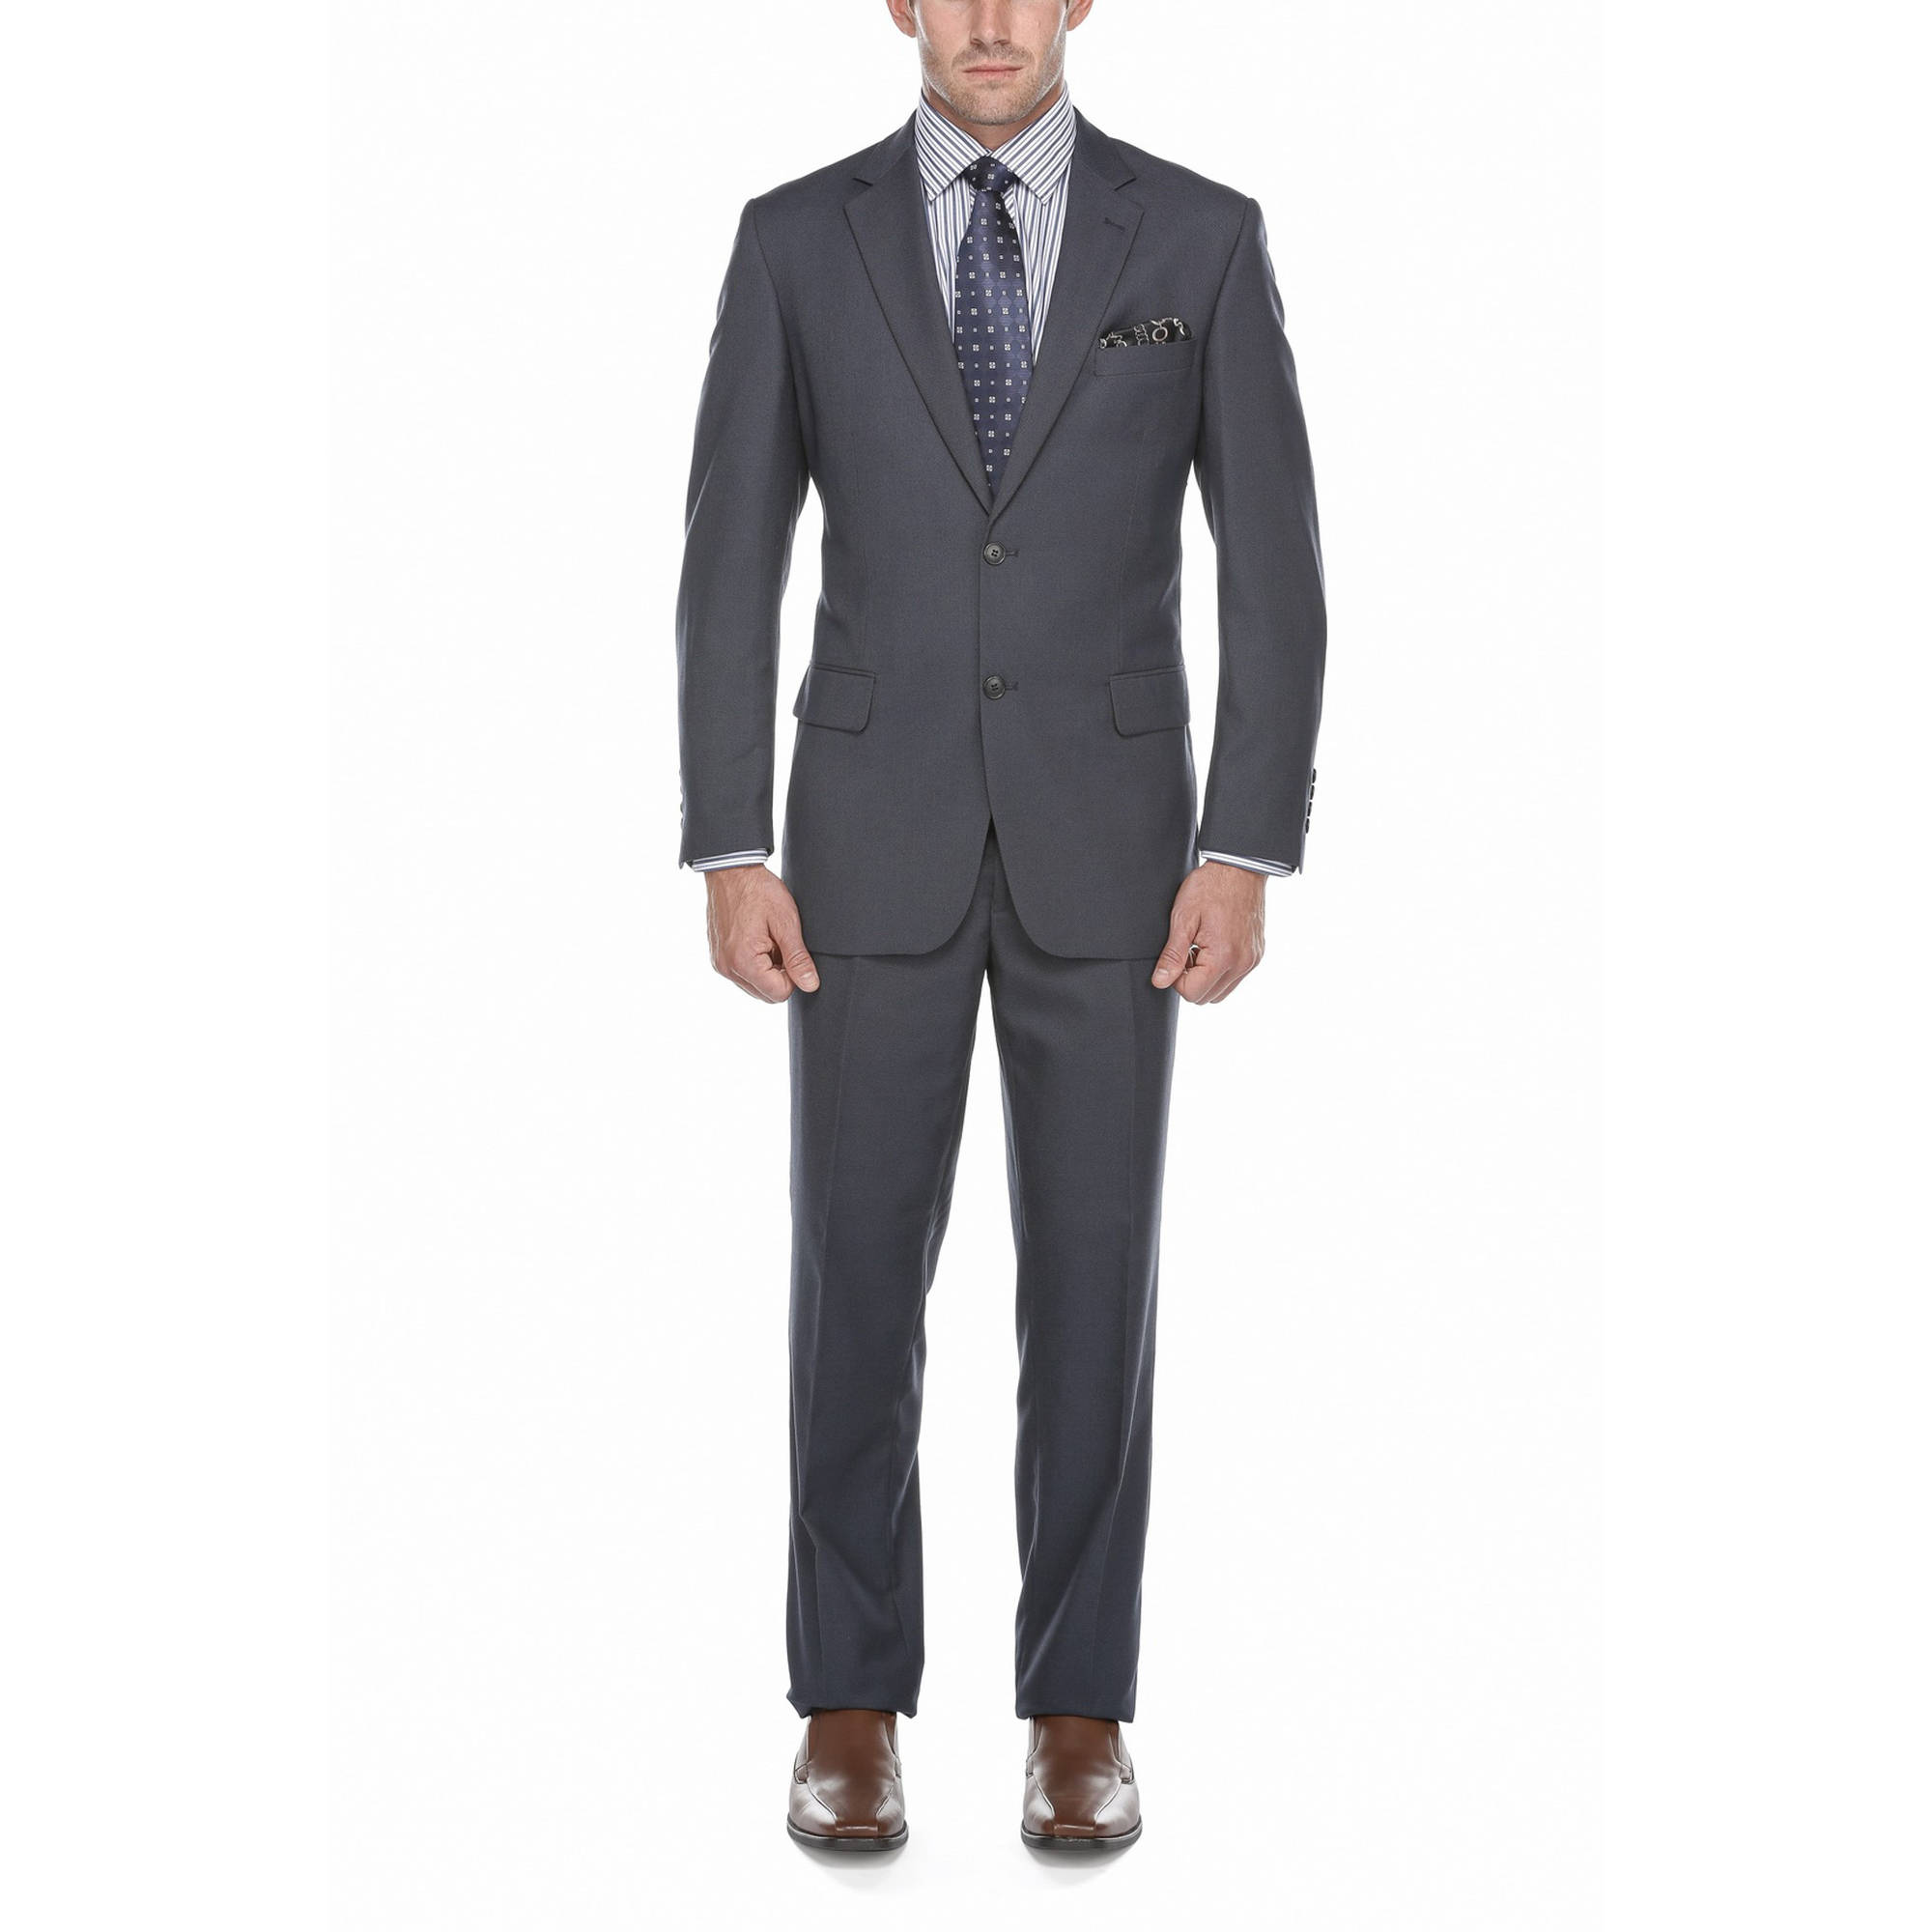 Verno Big Men's Steel Blue Birdseye Textured Classic Fit Italian Styled Two Piece Suit